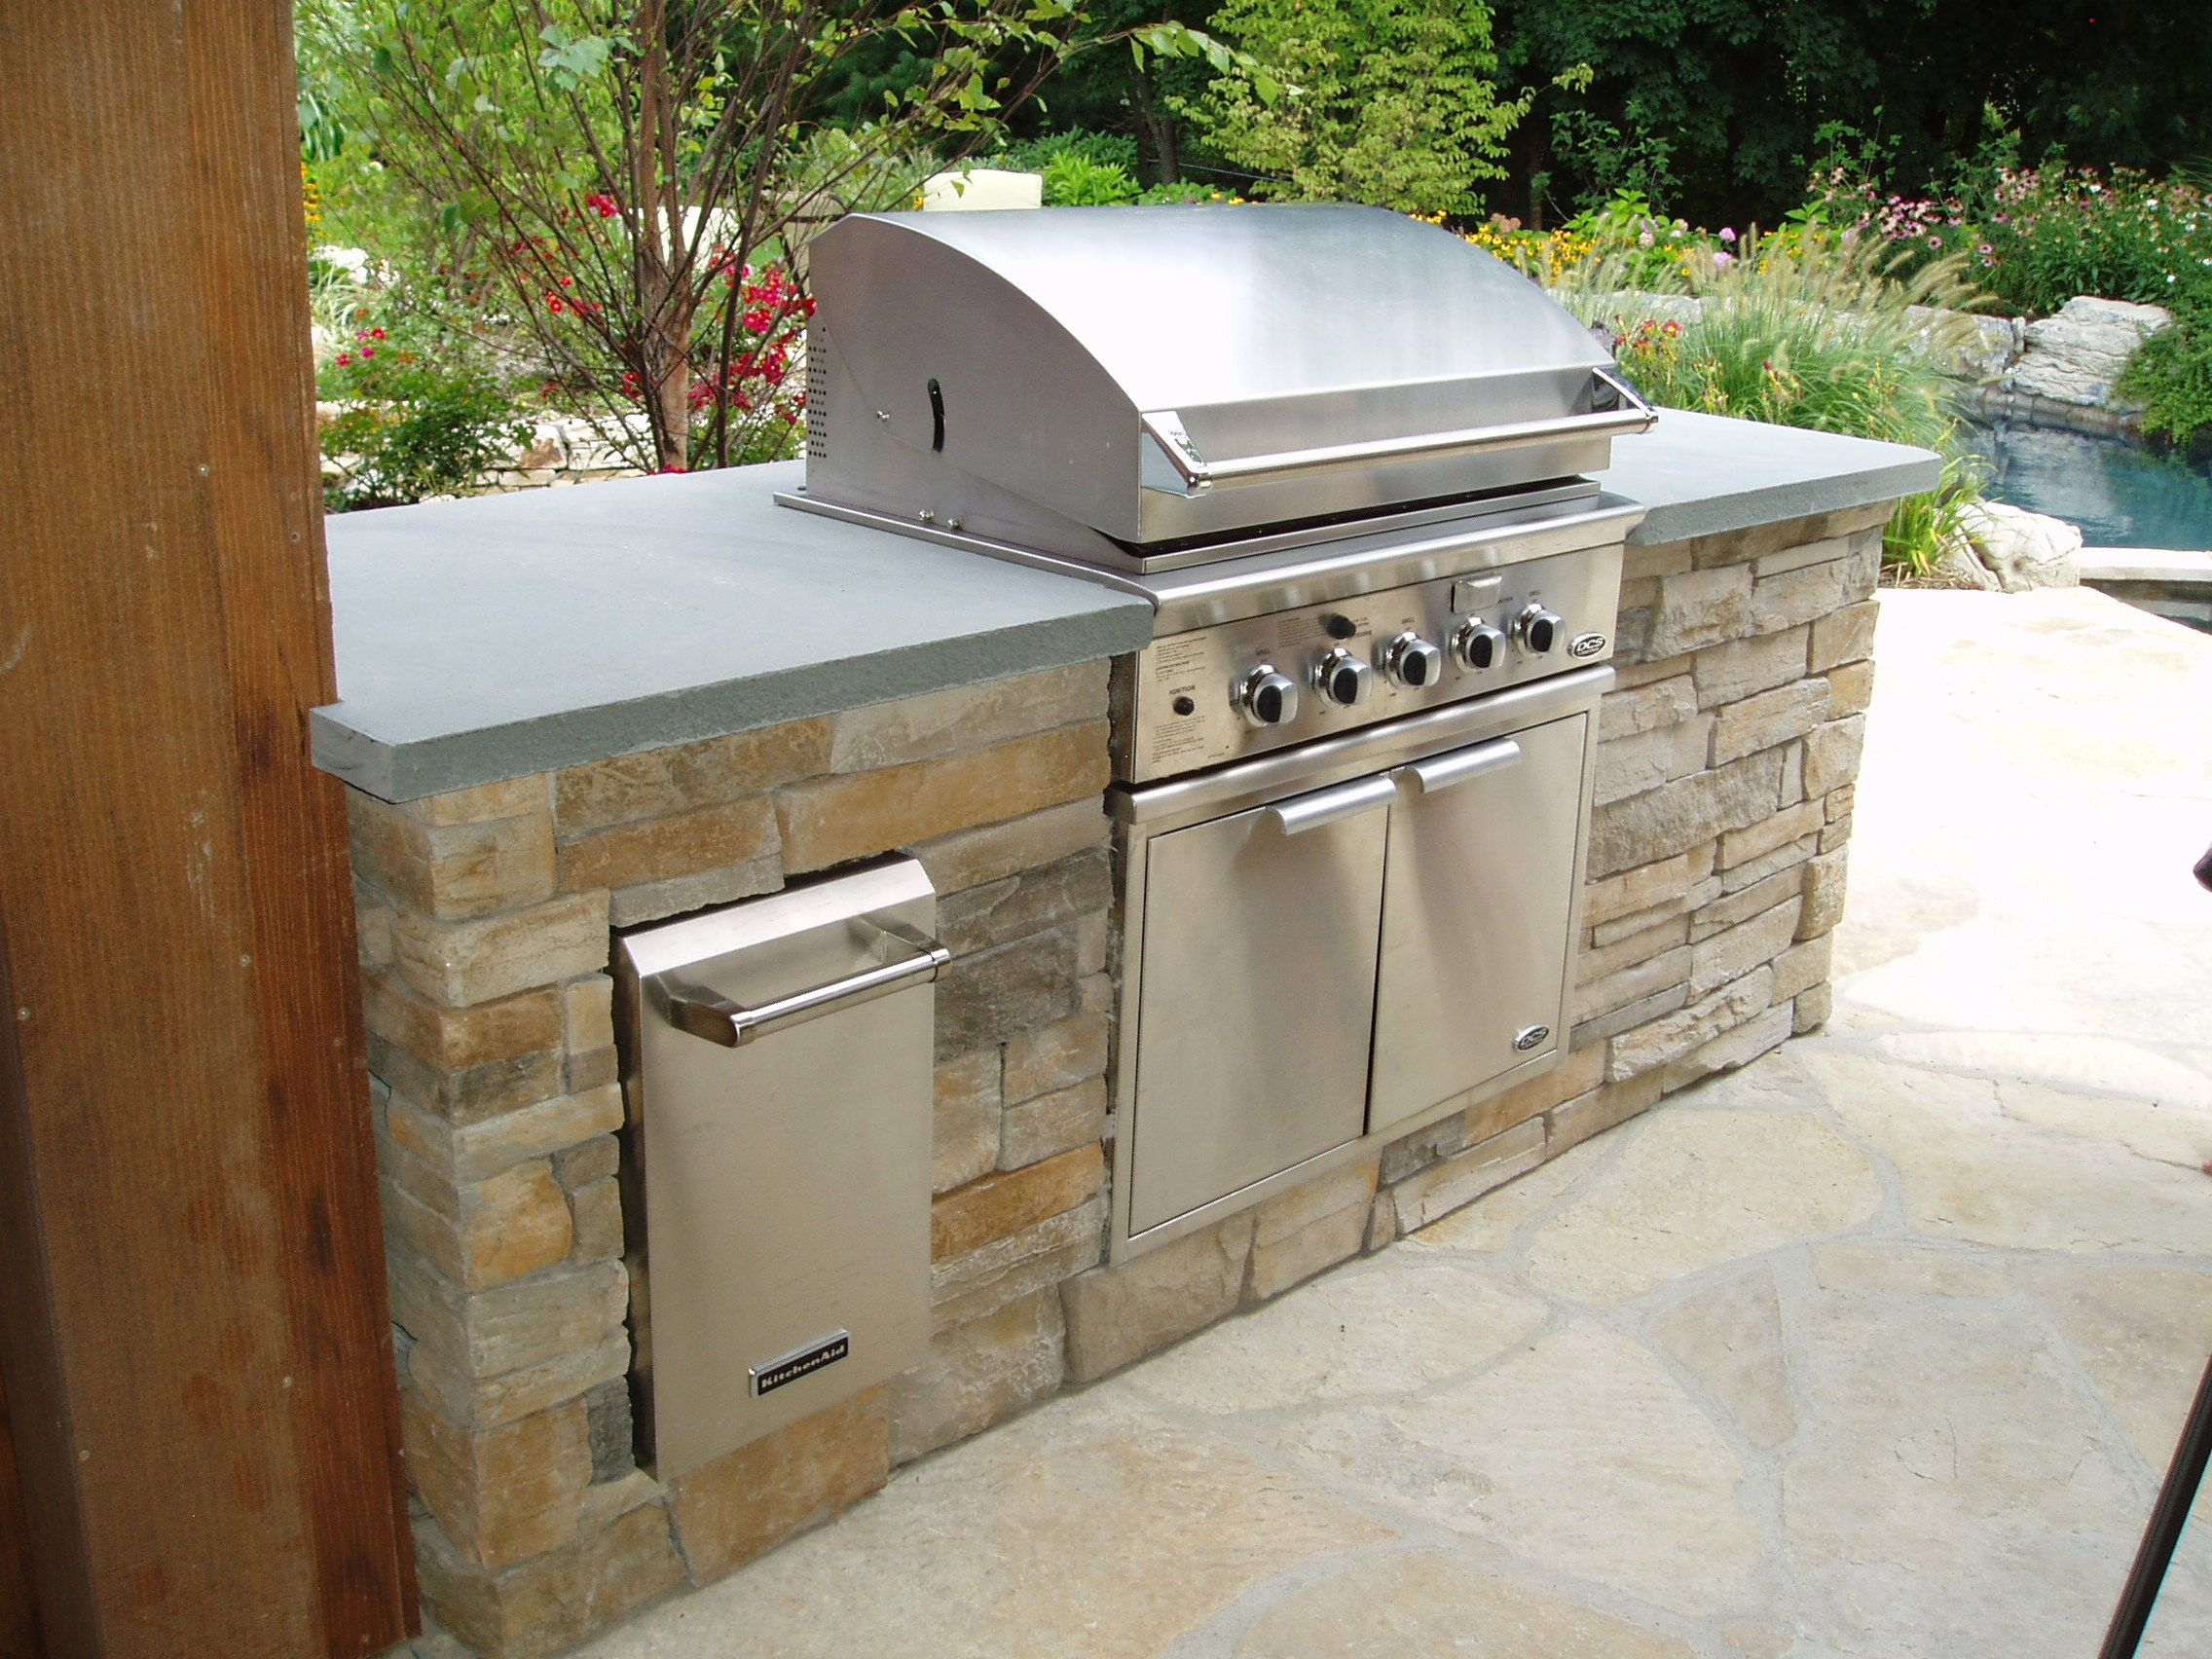 Outdoor Kitchen Grill Find Grill & Outdoor Cooking is very exciting ...